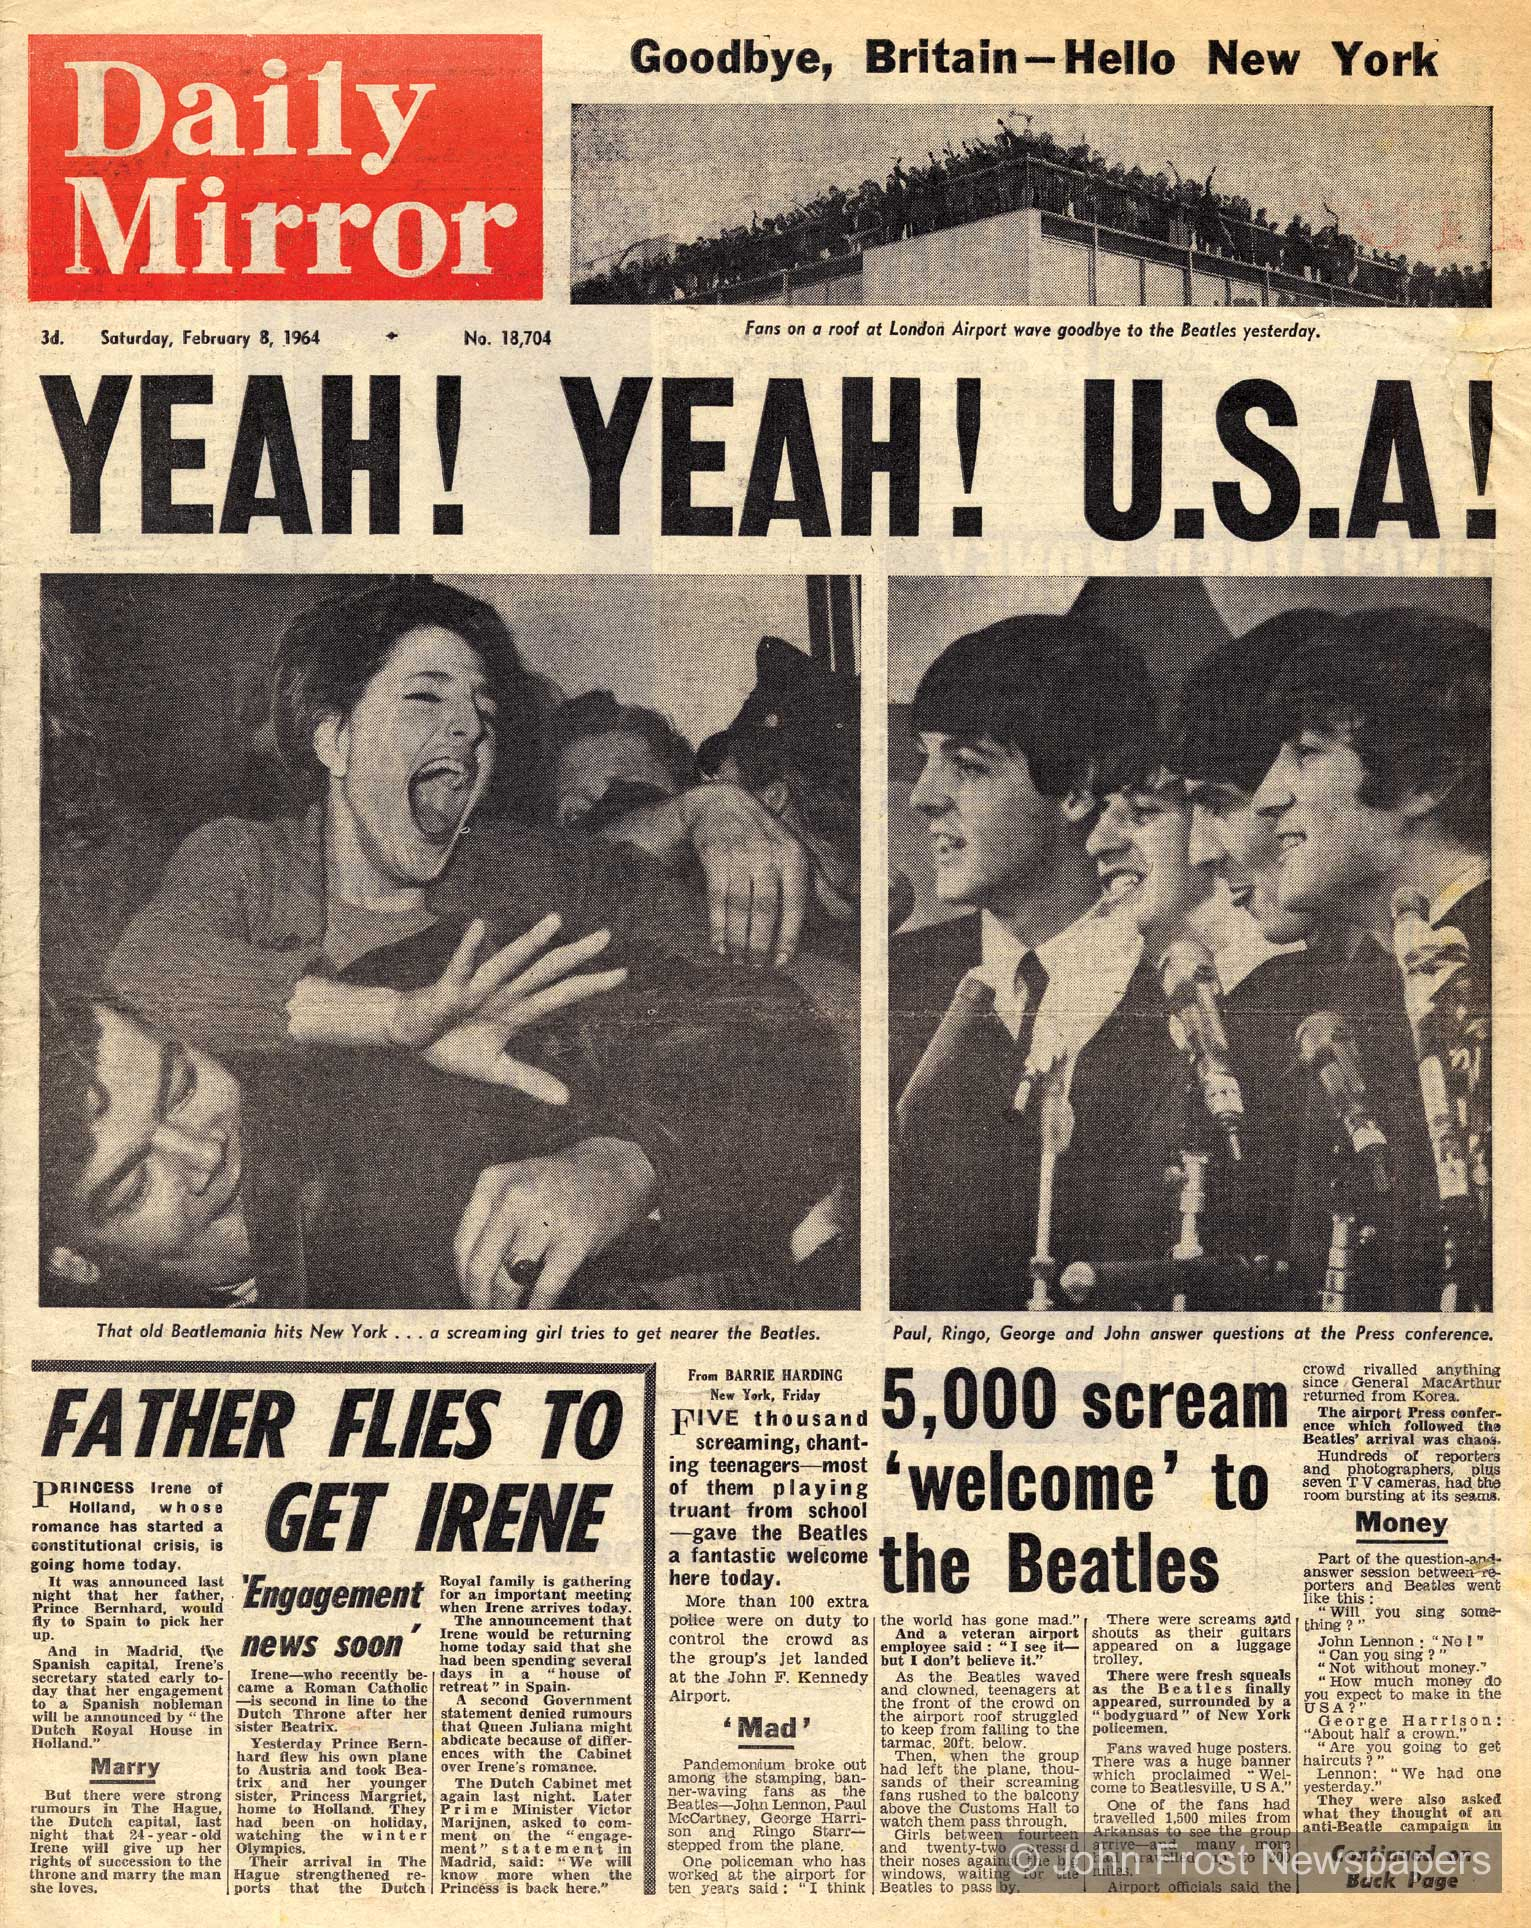 Beatles arrive in the USA